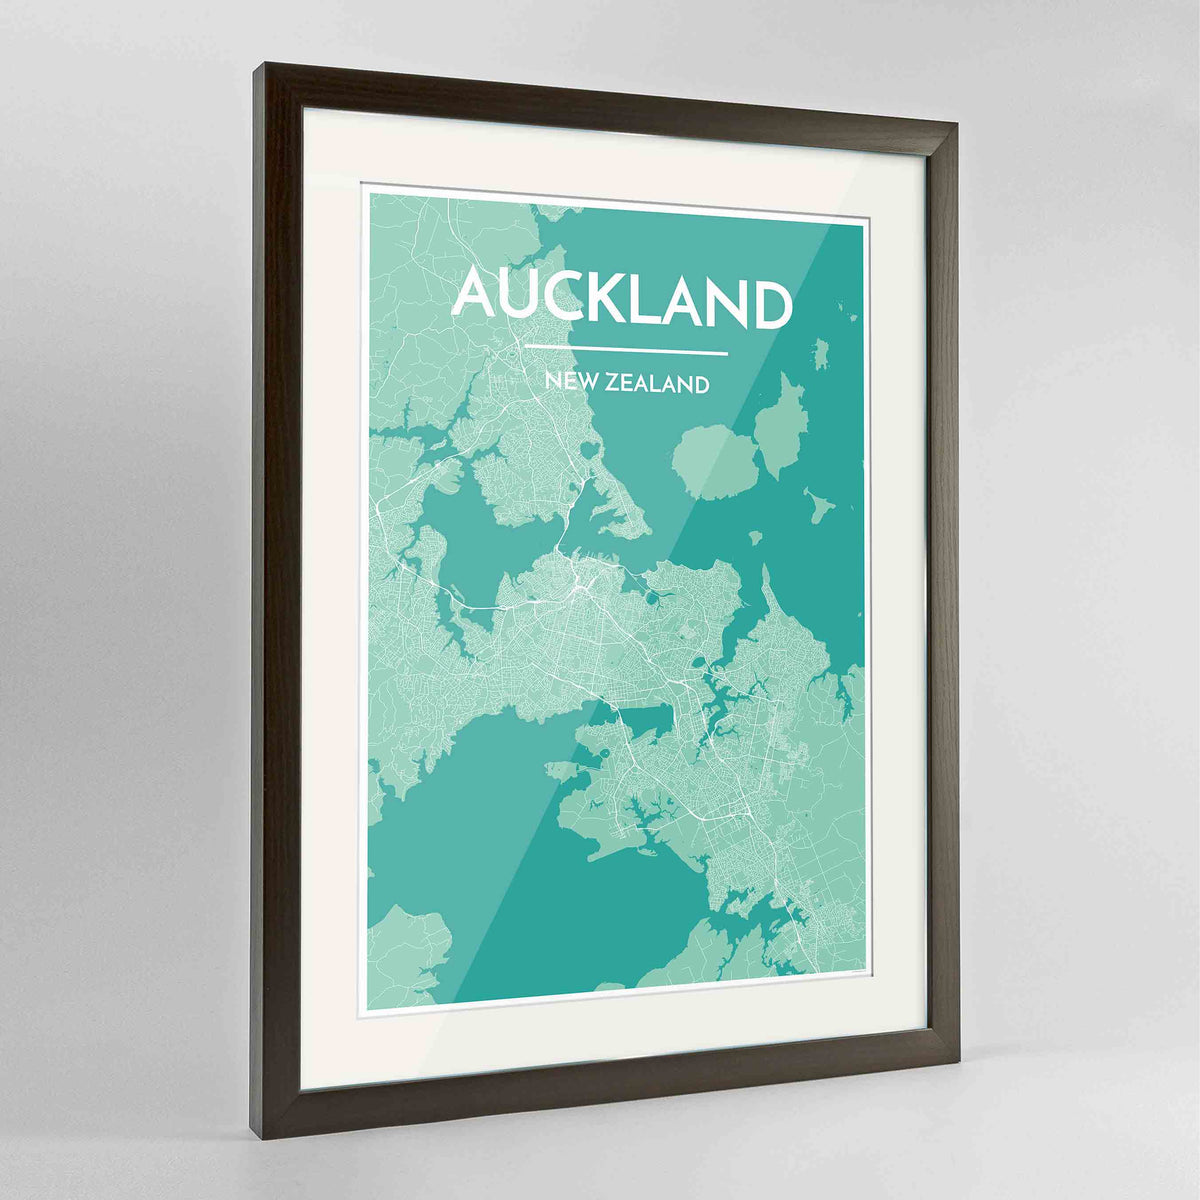 "Framed Auckland Map Art Print 24x36"" Contemporary Walnut frame Point Two Design Group"